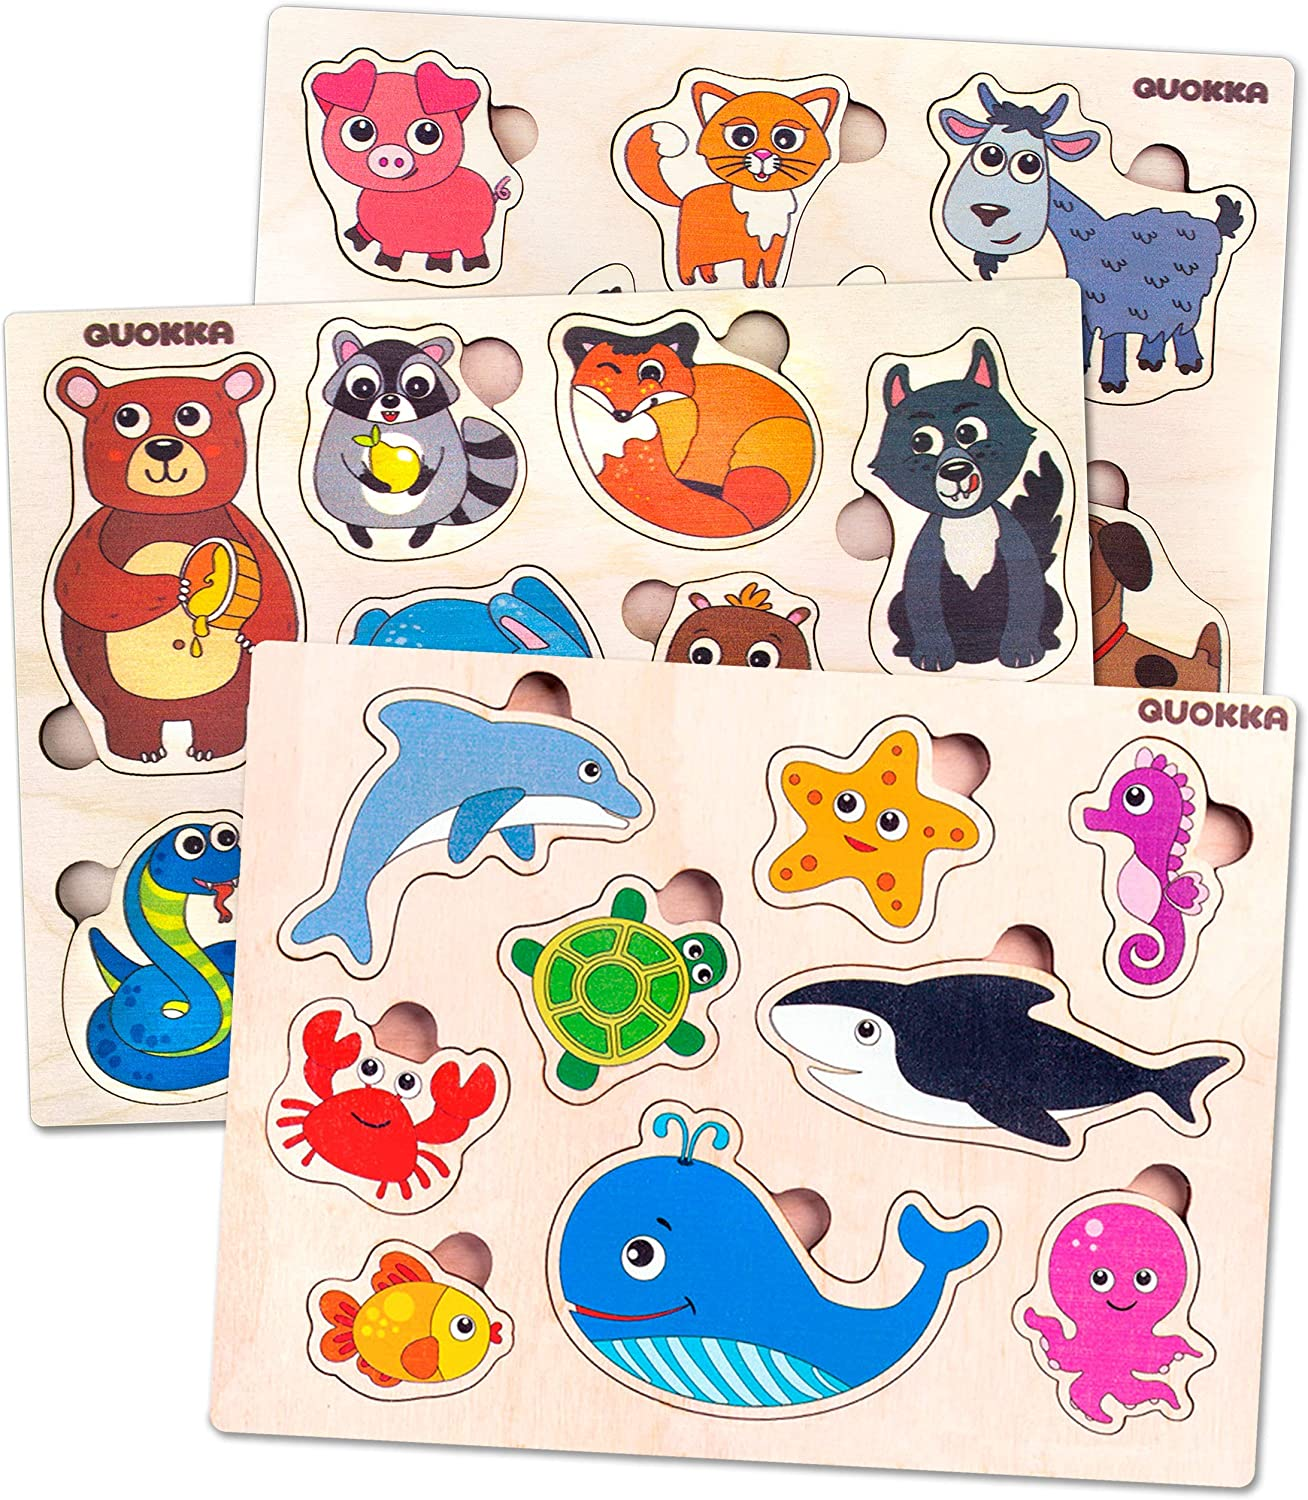 Toddler Toys Puzzles for Kids Ages 2-4 by Quokka – 3 Wooden Puzzles for Toddlers 1-3 Years Old - Babies' Wood Toy for Learning Animals and Sea Creatures - Gift Educational Toys for Boys and Girls